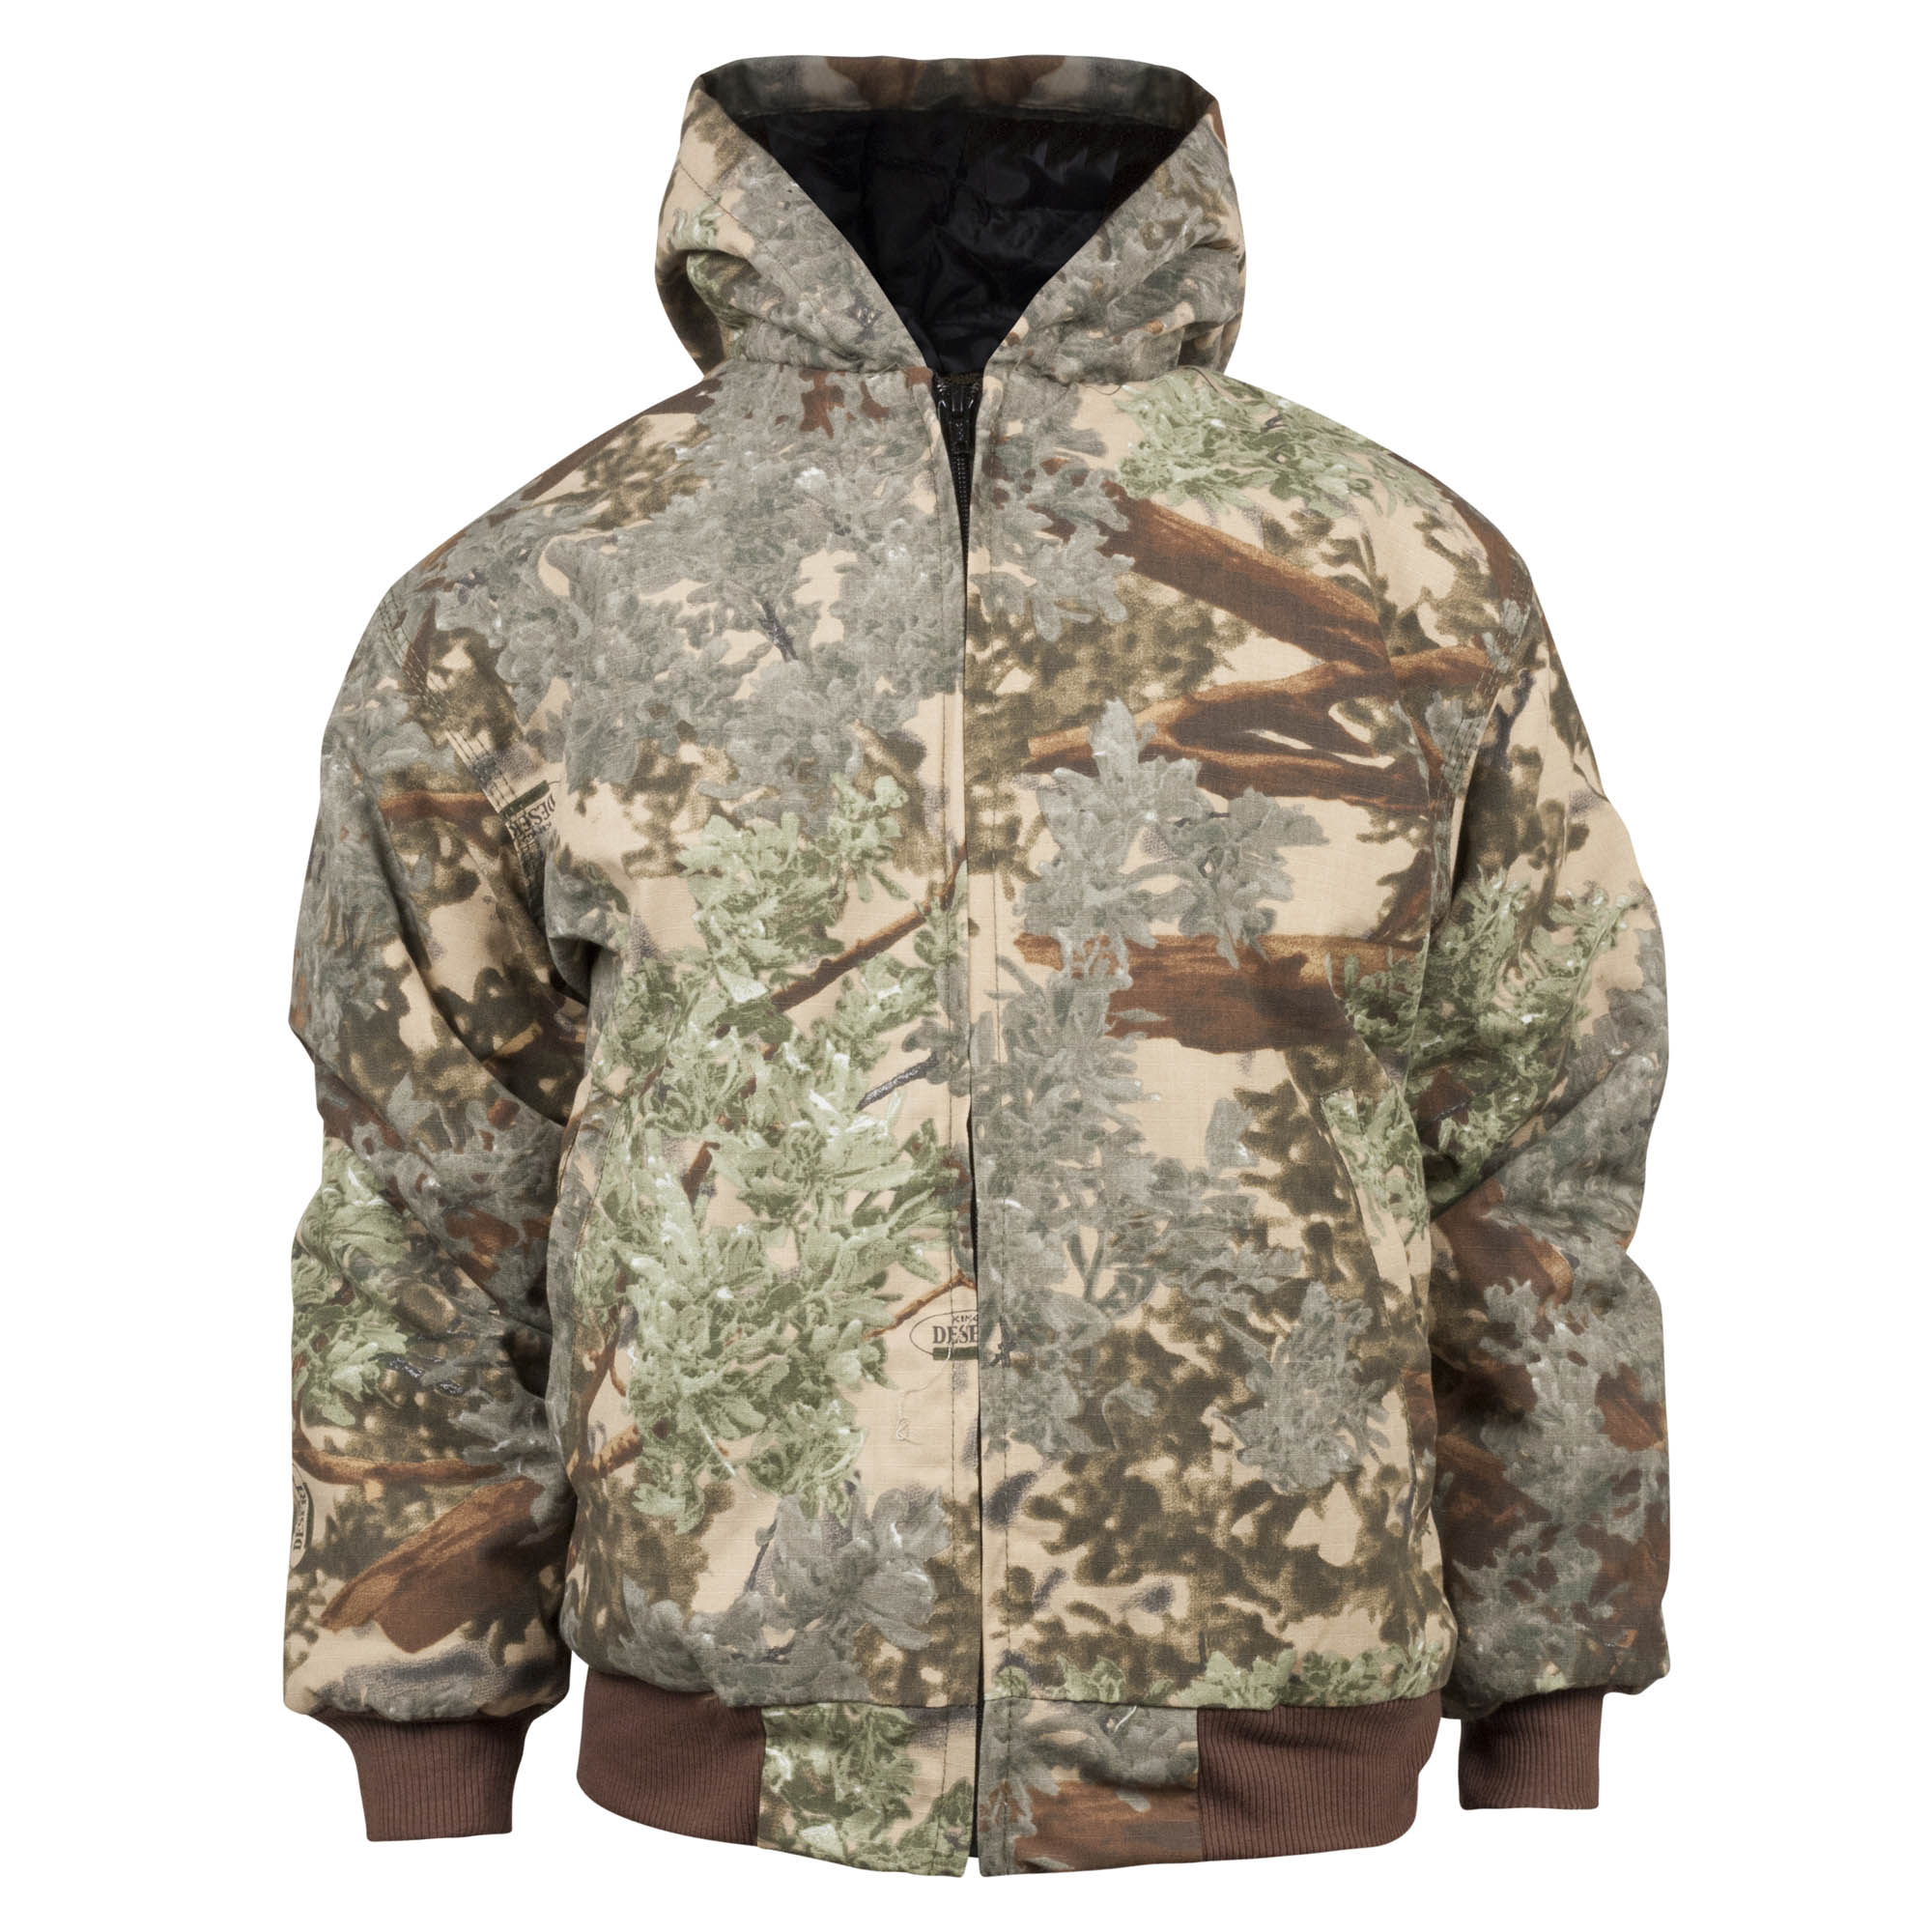 King's Camo Kids Classic Insulated Hunting Jacket Desert Shadow Youth